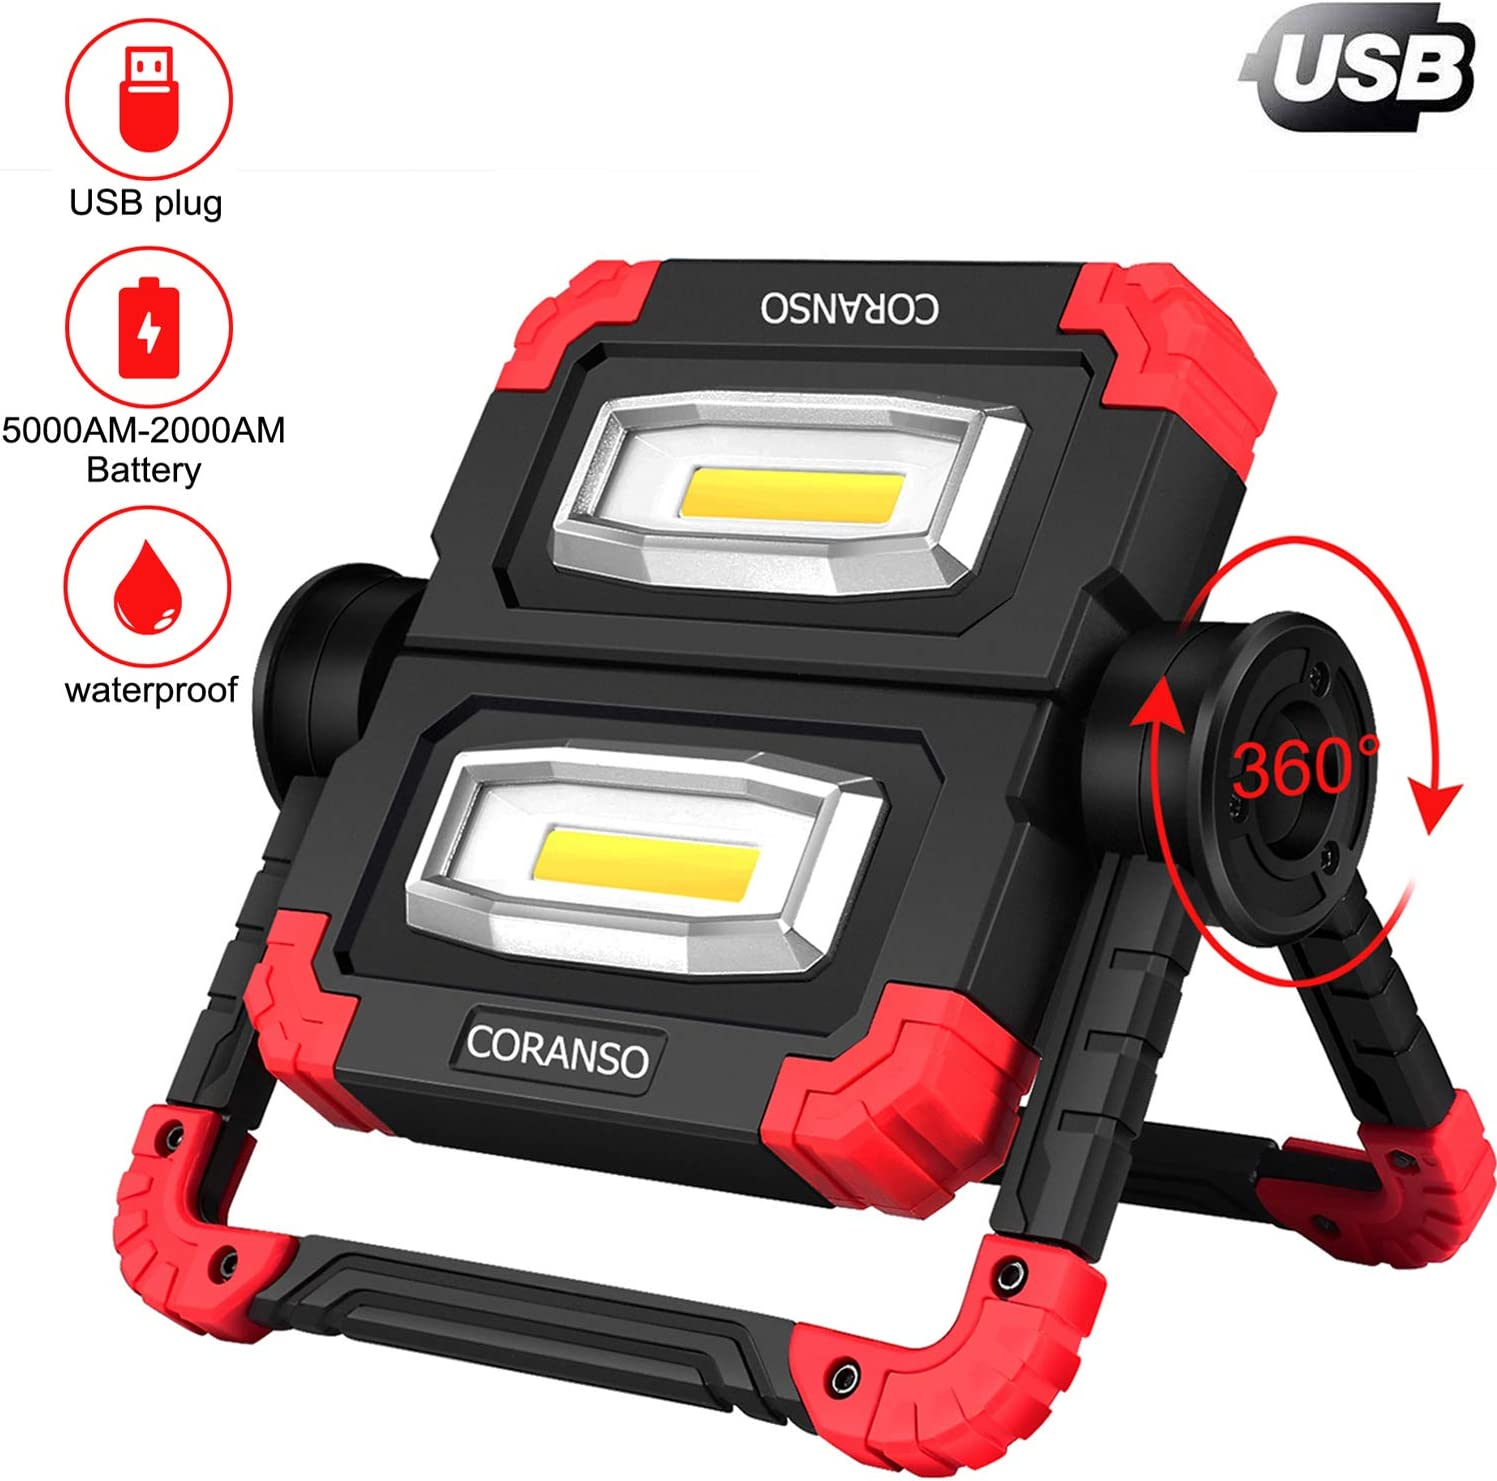 Portable LED Work Light,2 COB 2000LM USB Rechargeable Flood Lights Waterproof 360°Rotation Folding Stand Working Light for Car Repairing,Camping,Hiking Emergency,Backpacking,Fishing & Job Site Light